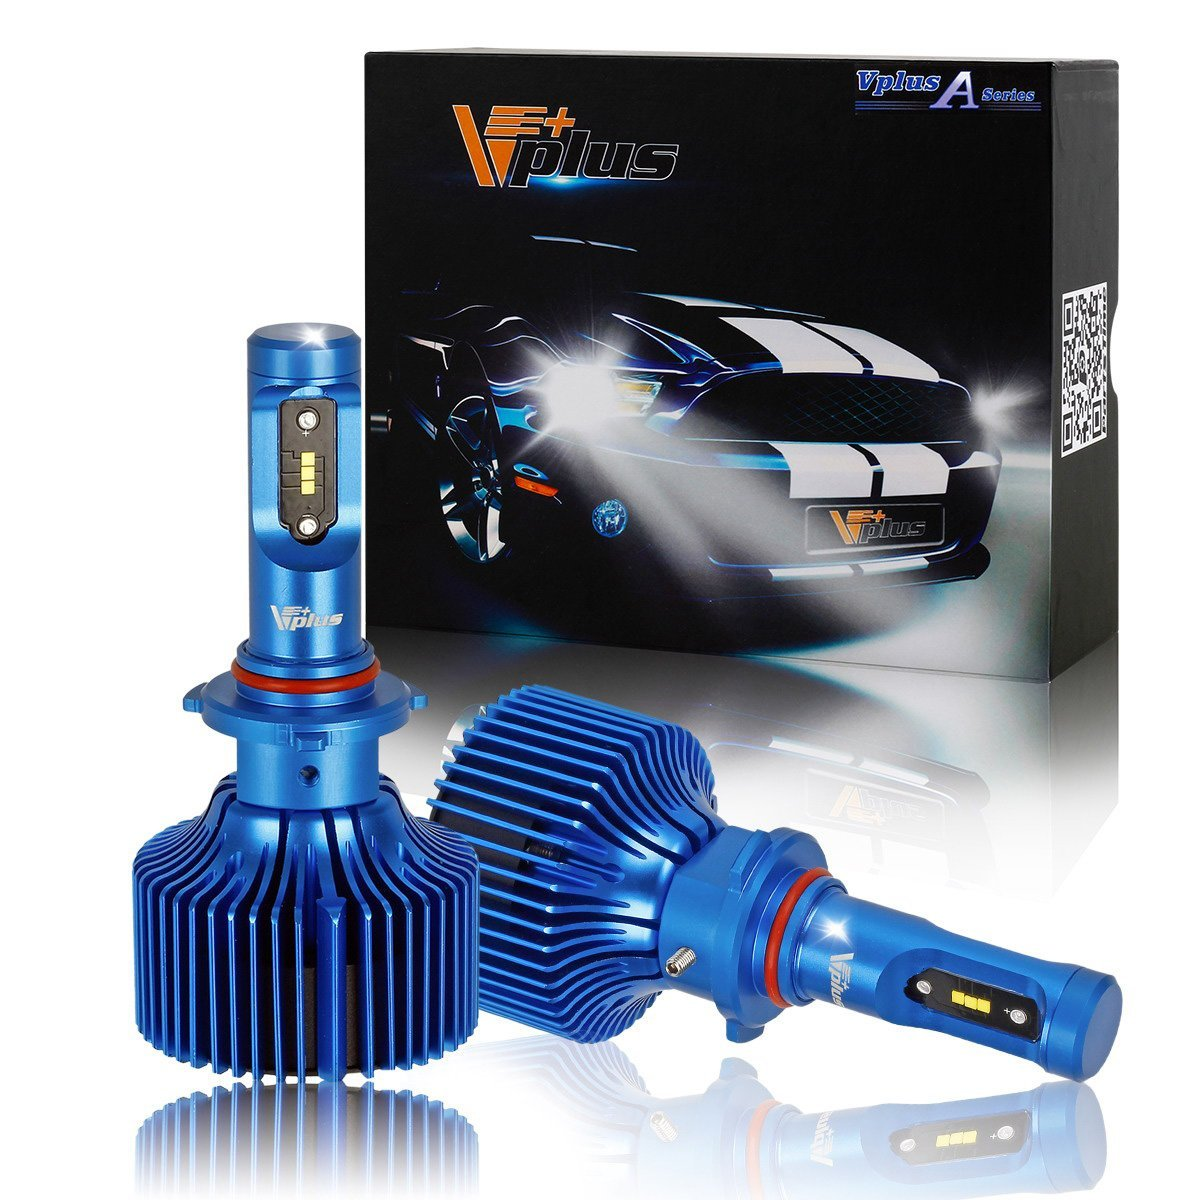 Vplus Q Series LED Headlight Bulbs w/Clear Arc-Beam Conversion Kit -9005 HB3 100W 9,000LM White All in One Headlamp Adjustable Light Pattern 8K Light Blue LED Replace HID&Halogen -(2pcs/set)